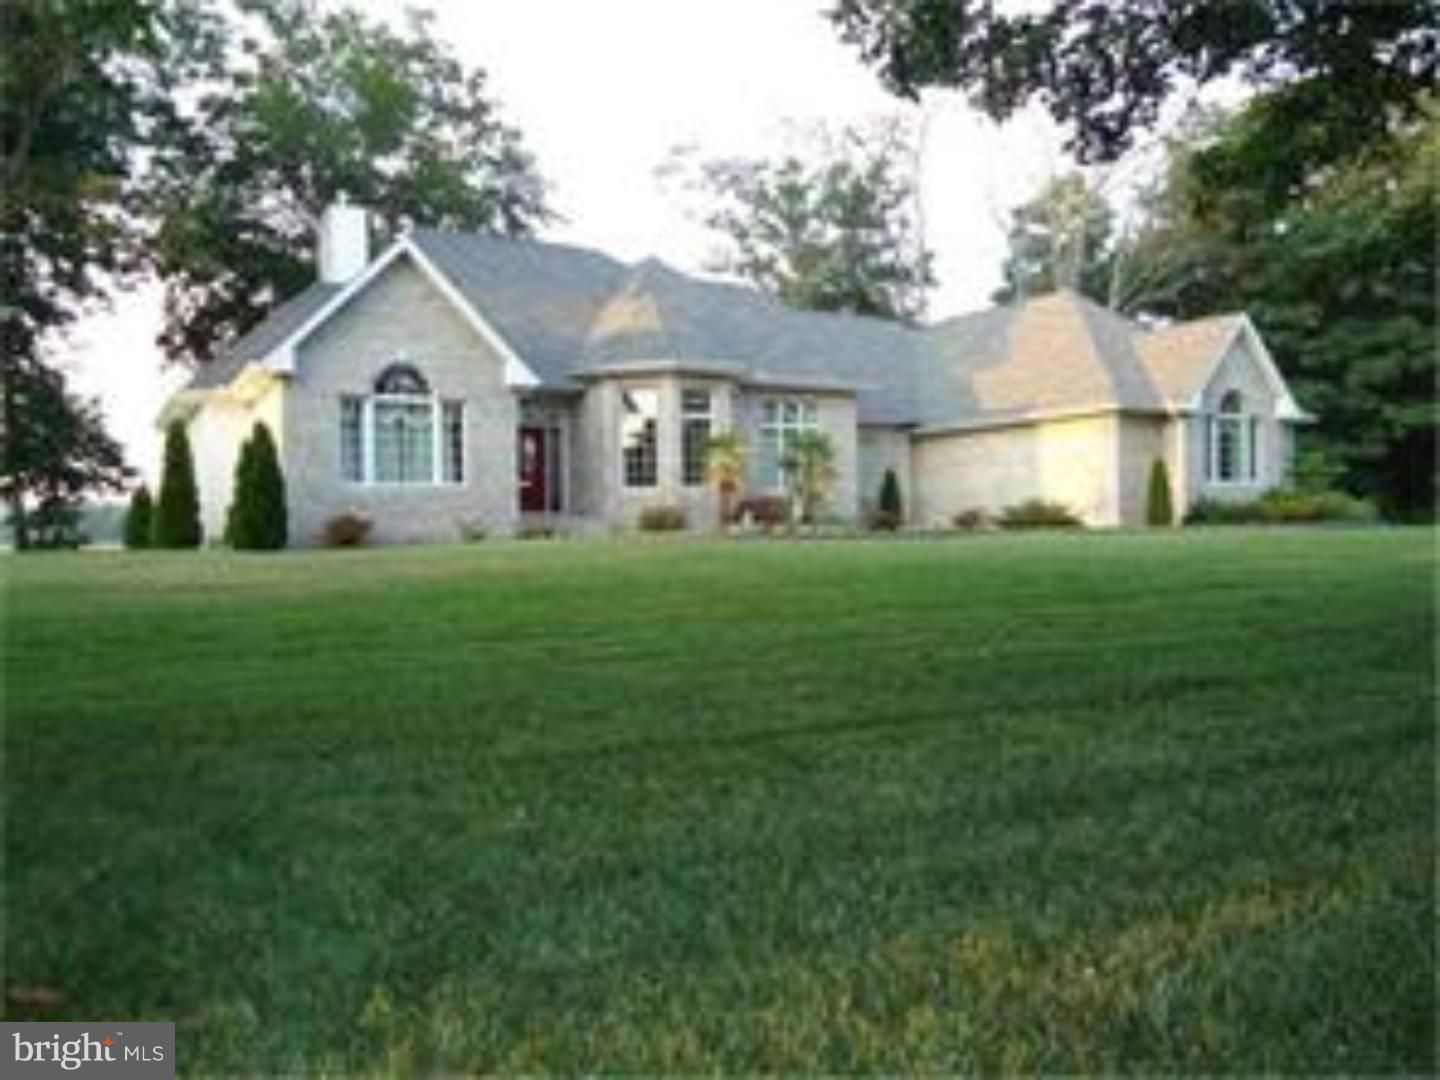 Magnificent waterfront ranch in highly sought after Windswept in Caesar Rodney School District.  Beautiful gleaming marble floors can be found throughout the entire home.  Stepping into the foyer and proceeding through the archway into the great room you will notice the water view through your floor to ceiling wall of windows with soaring cathedral ceiling and floor to ceiling fireplace.  The appliances are new and the master bedroom features double walk-in closets, marble counters, a jetted tub and separate shower.  the home boasts a split floor plan so the home owner can be separate from their guests for privacy.  The third bedroom is currently being used as a home office.  There is a large over-sized 3 car garage, a landscape lighting package, irrigation system and far too many upgrades to mention them all here.  There is a full basement that can be finished off for future use, but current owners used it for storage.  A secluded 12 X 24 Trex deck was recently added for enjoying the wonderful water views.  You can enjoy the water views whether relaxing on the deck, in the expansive great room or in the jetted tub in the master bedroom.  Truly a unique home.